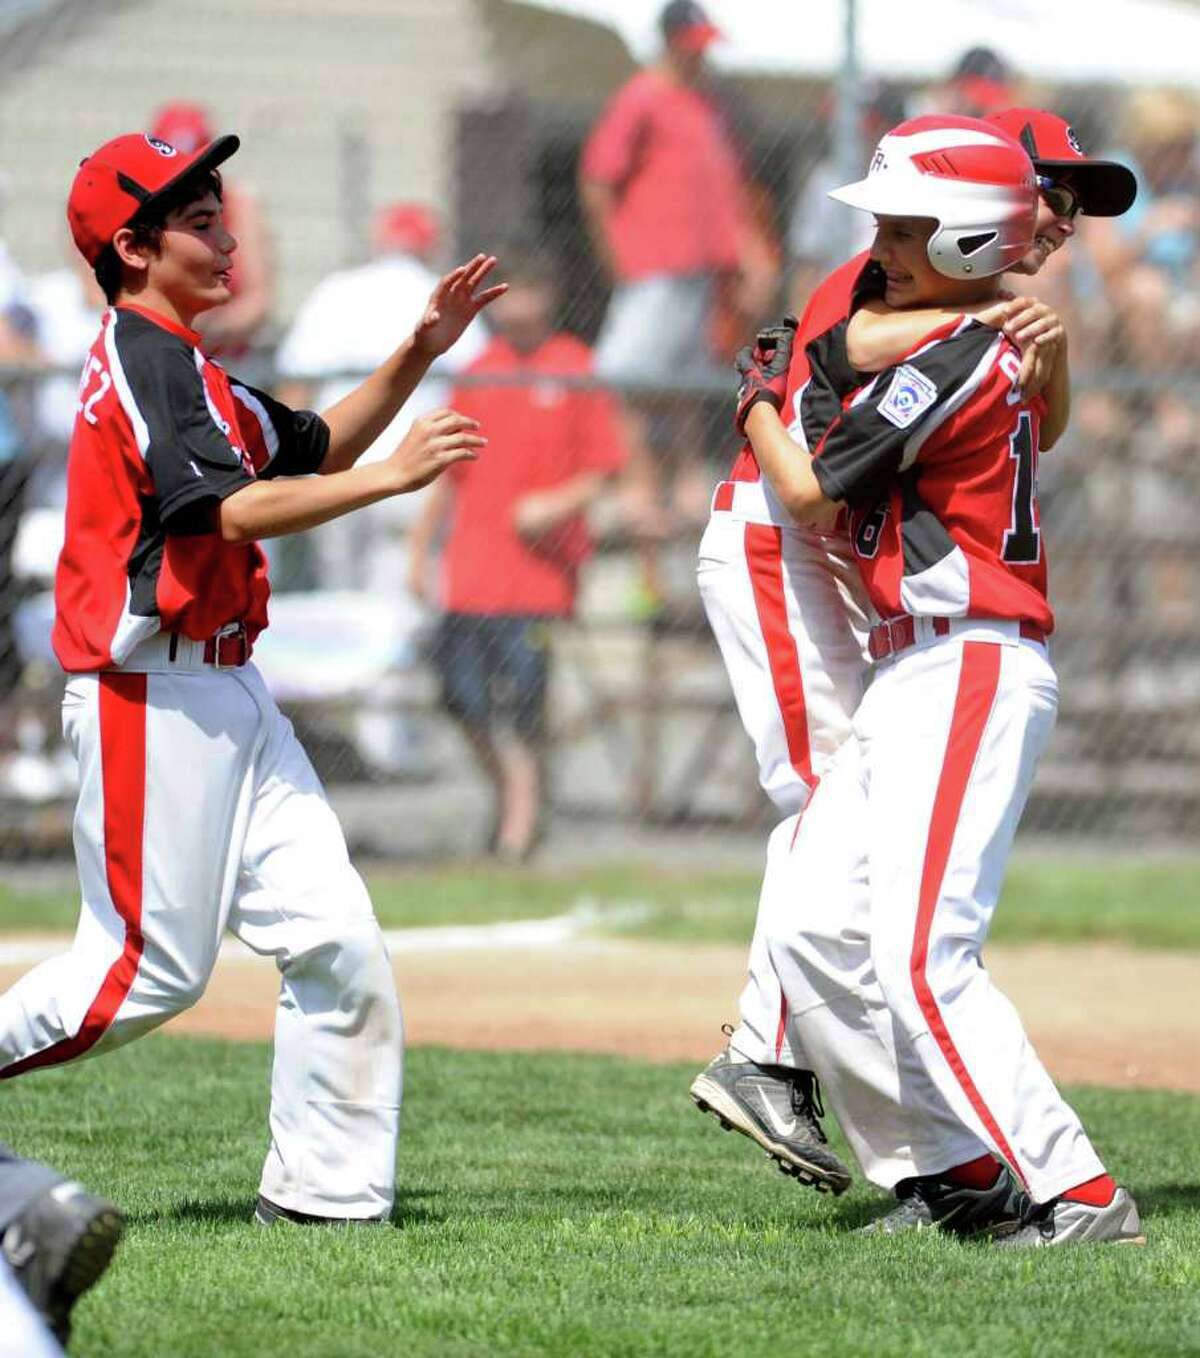 Fairfield American celebrates their win against Glastonbury American in the Connecticut State Championship game 2 at Prospect Little League Field on Sunday, July 31, 2011.